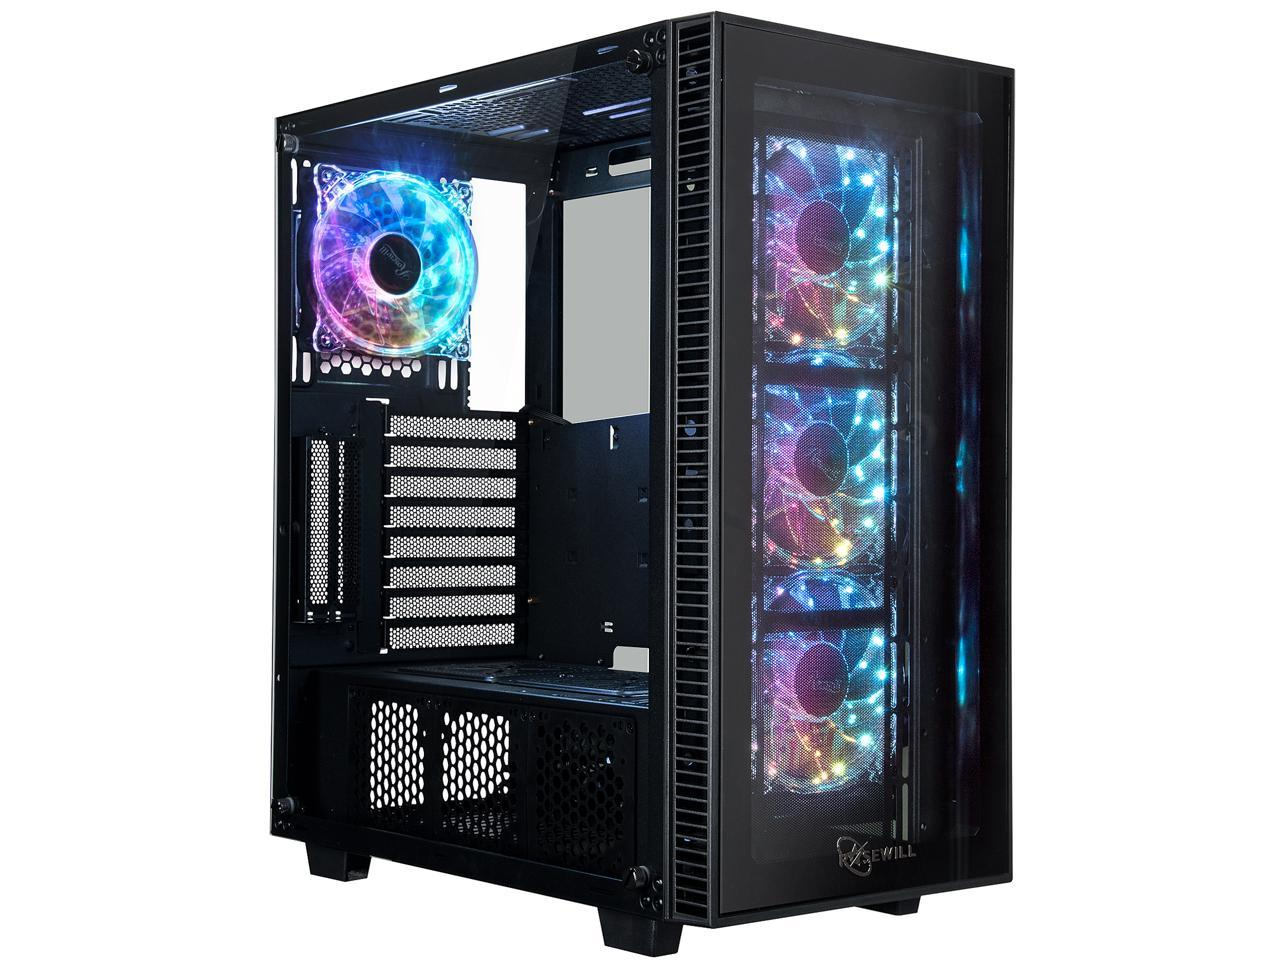 Rosewill CULLINAN MX ATX Mid Tower Computer Case + 650W Power Supply